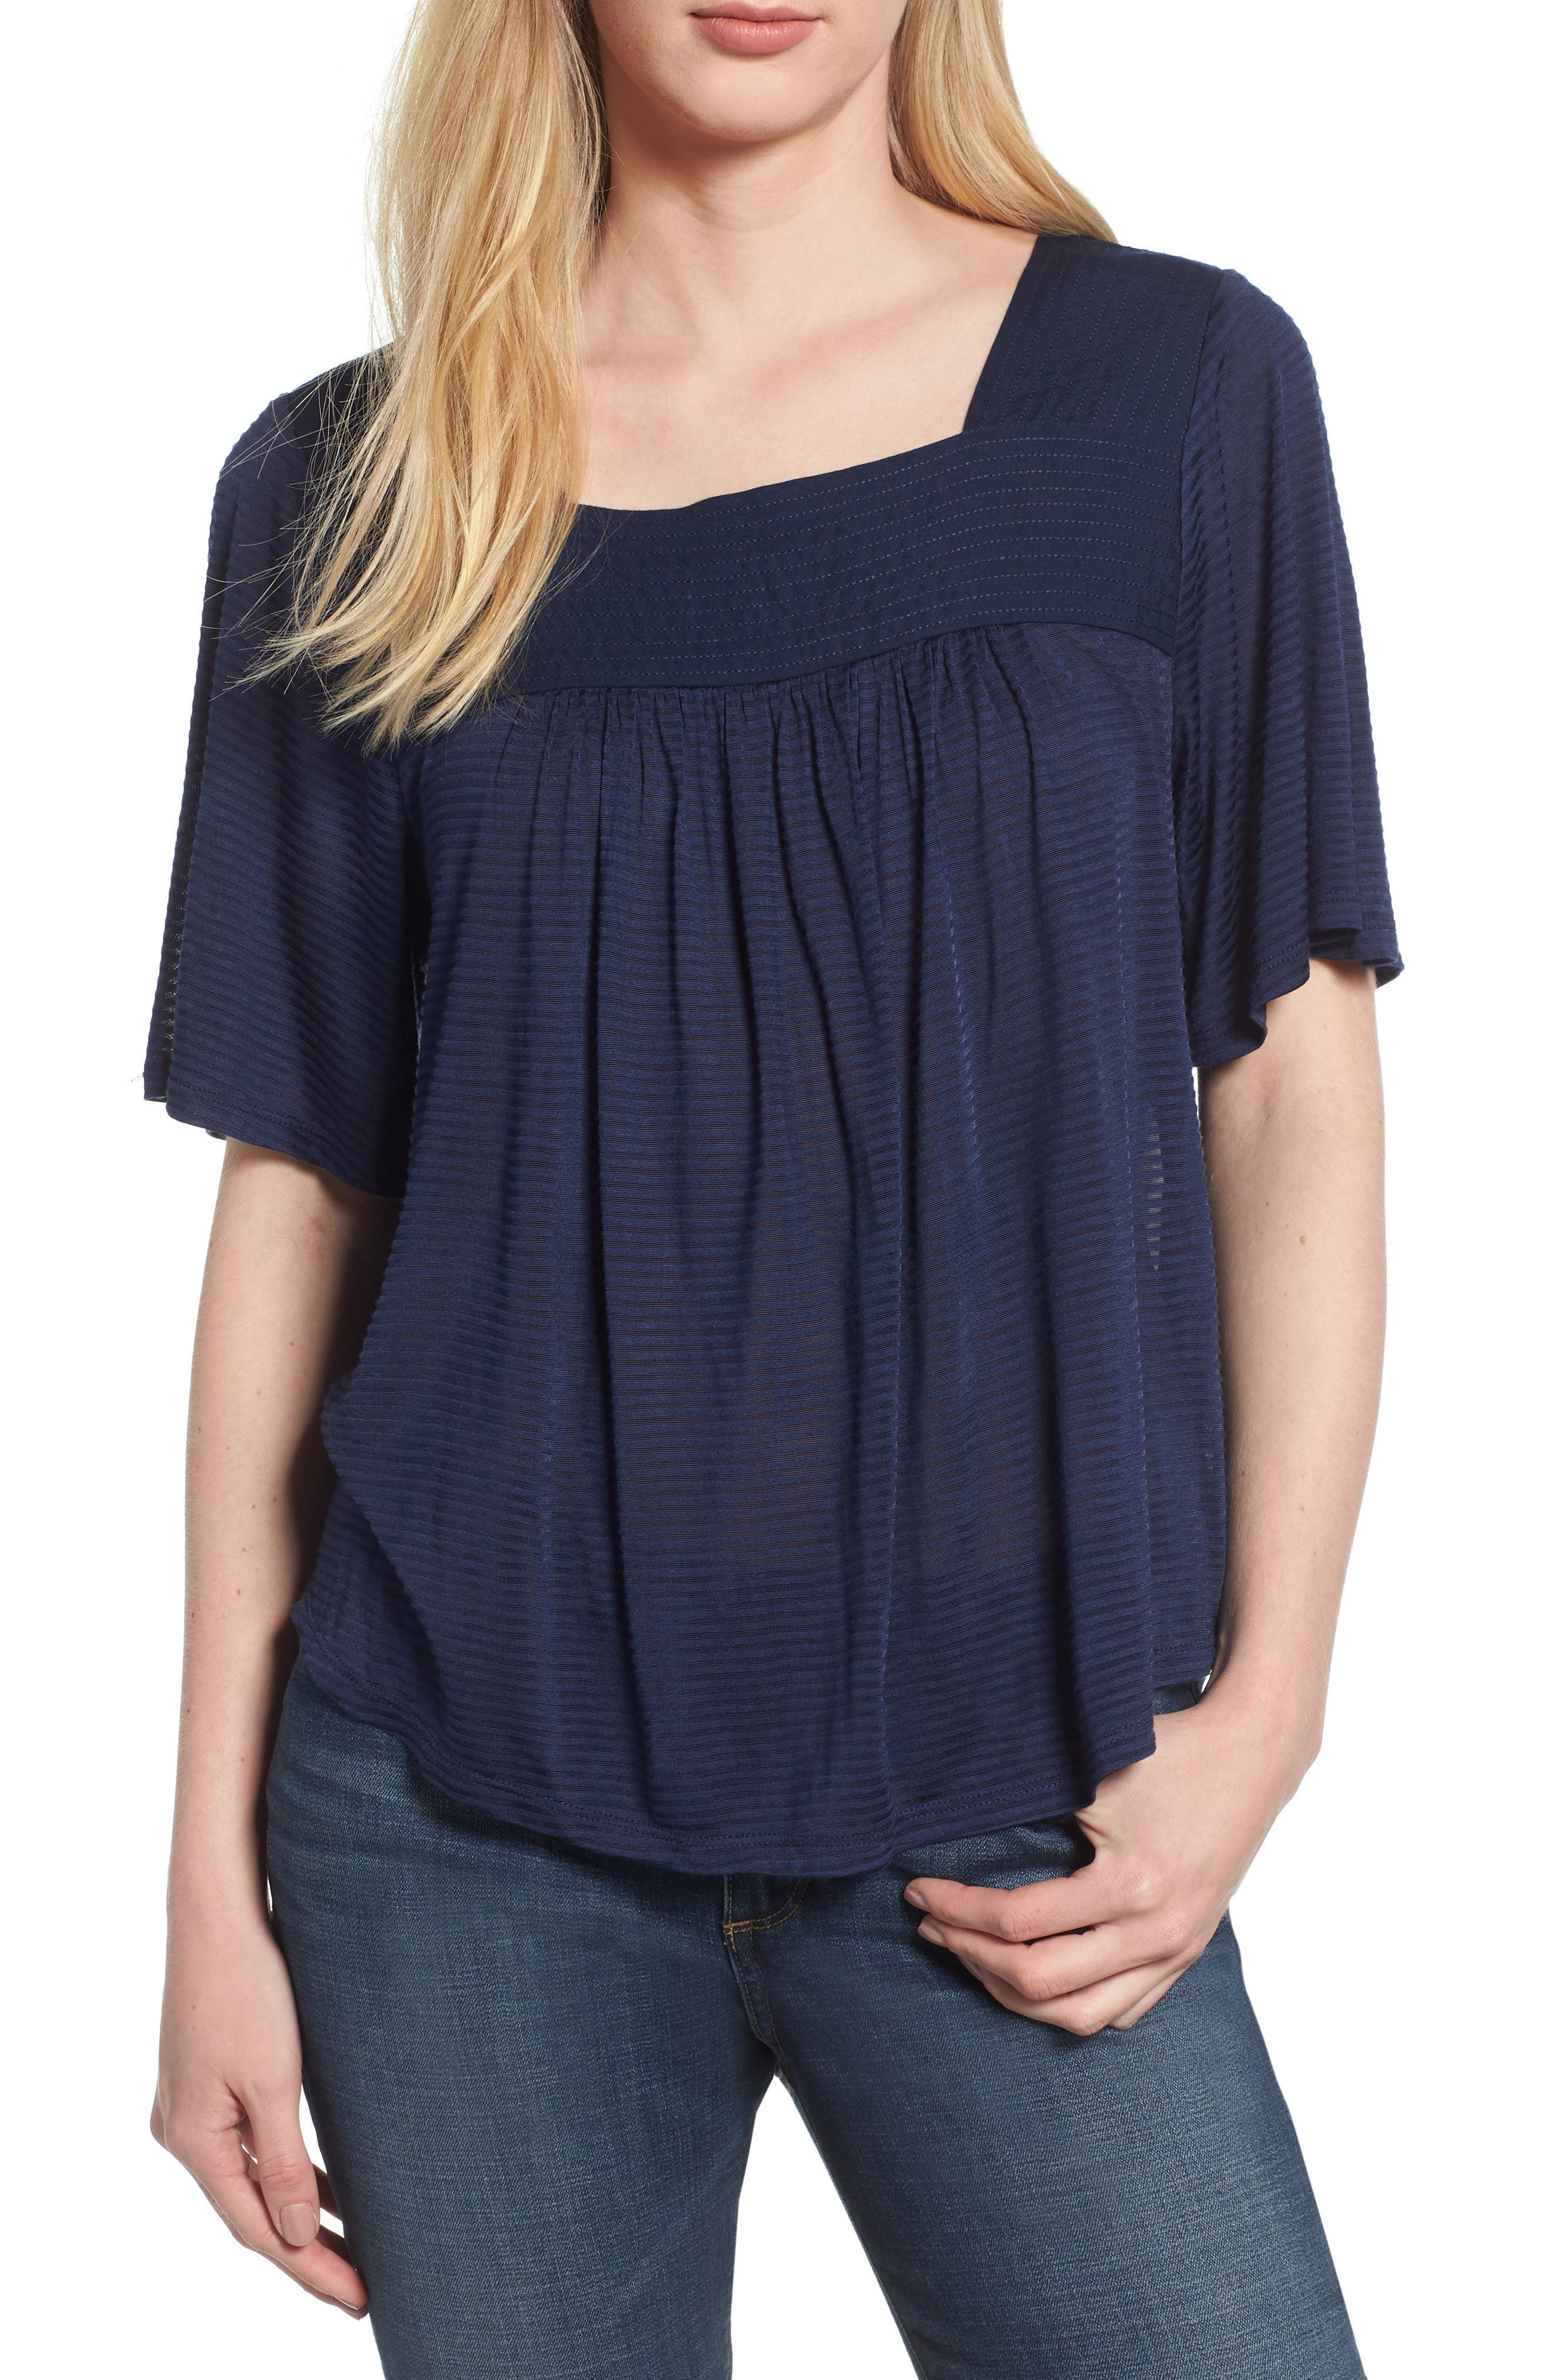 LUCKY BRAND, Shadow Stripe Peasant Top, Main thumbnail 1, color, AMERICAN NAVY